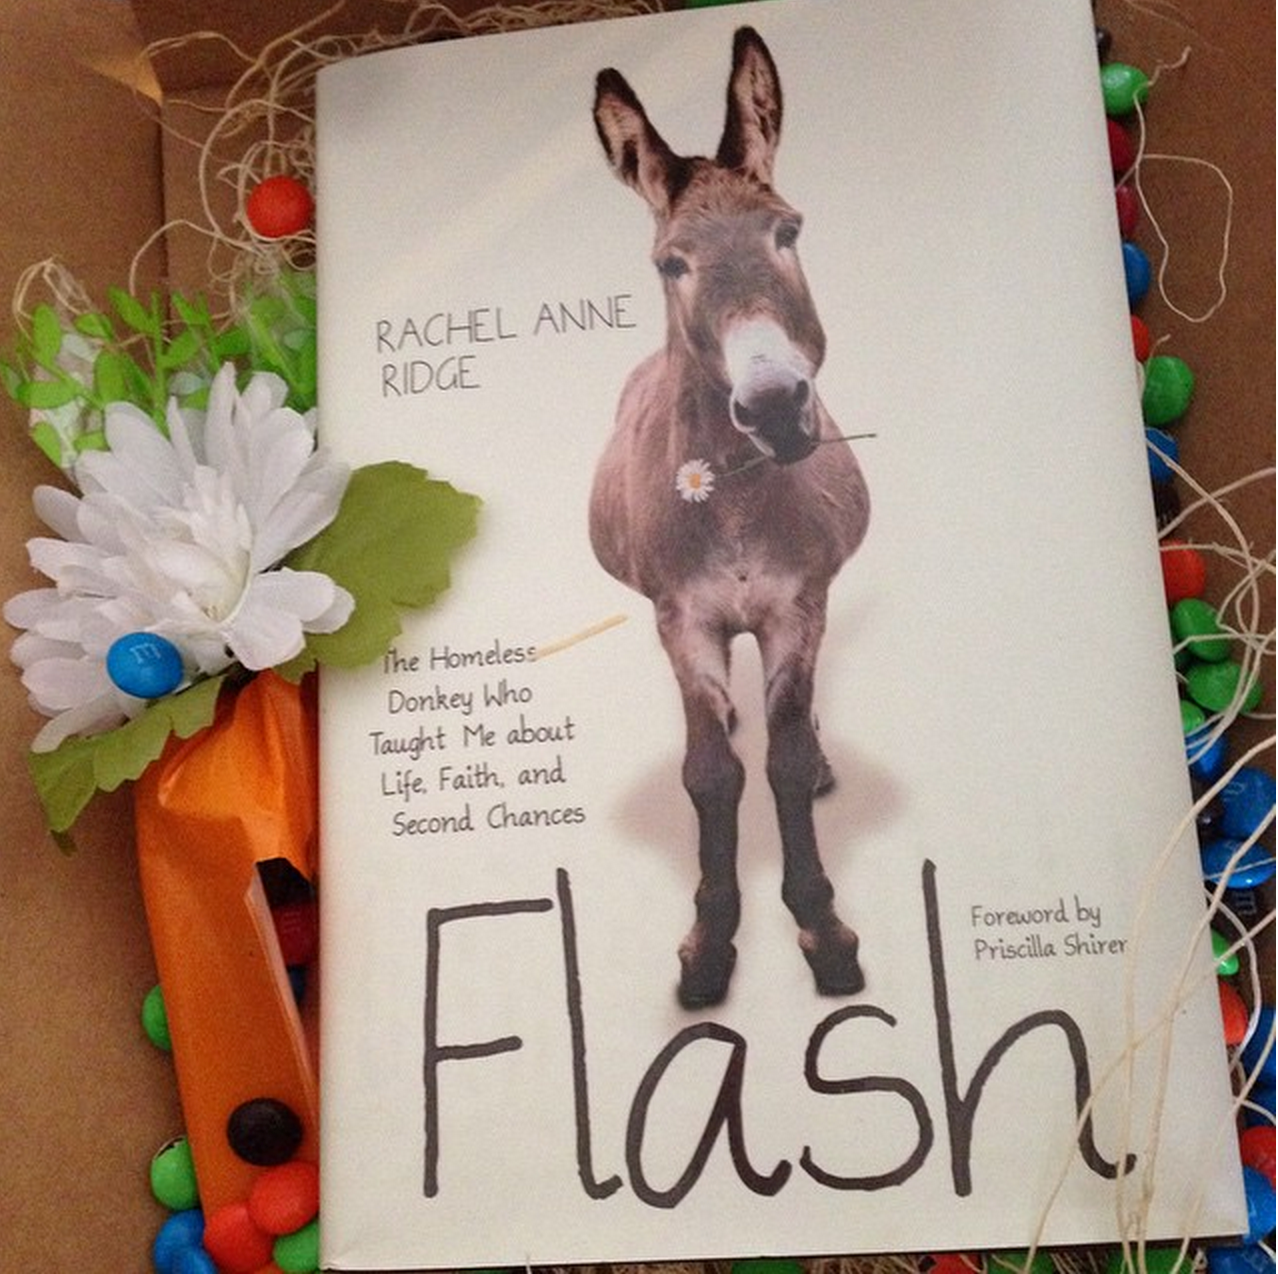 Flash the Donkey